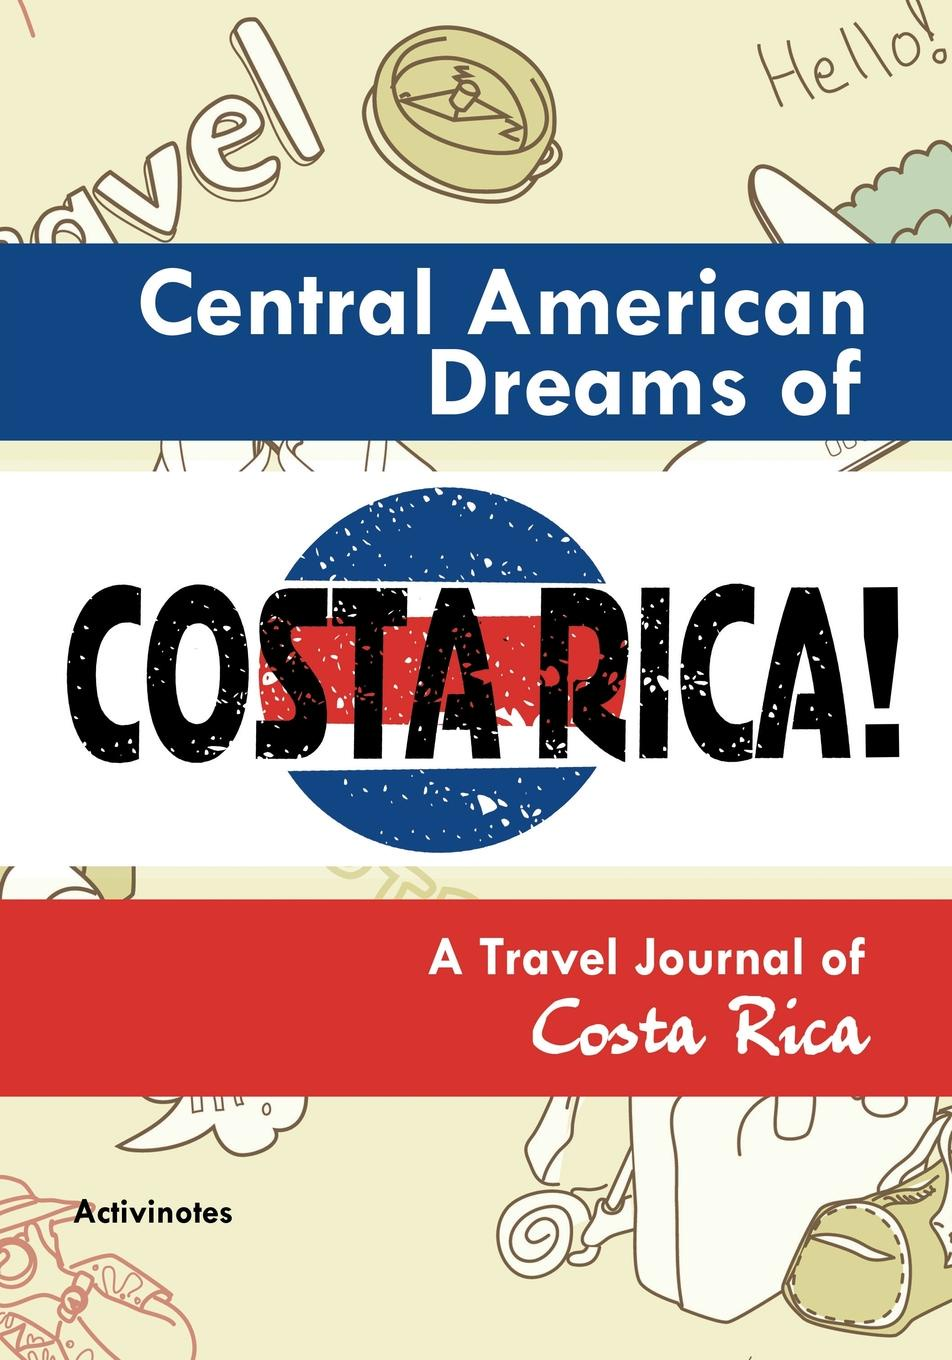 Activinotes Central American Dreams of Costa Rica! A Travel Journal of Costa Rica